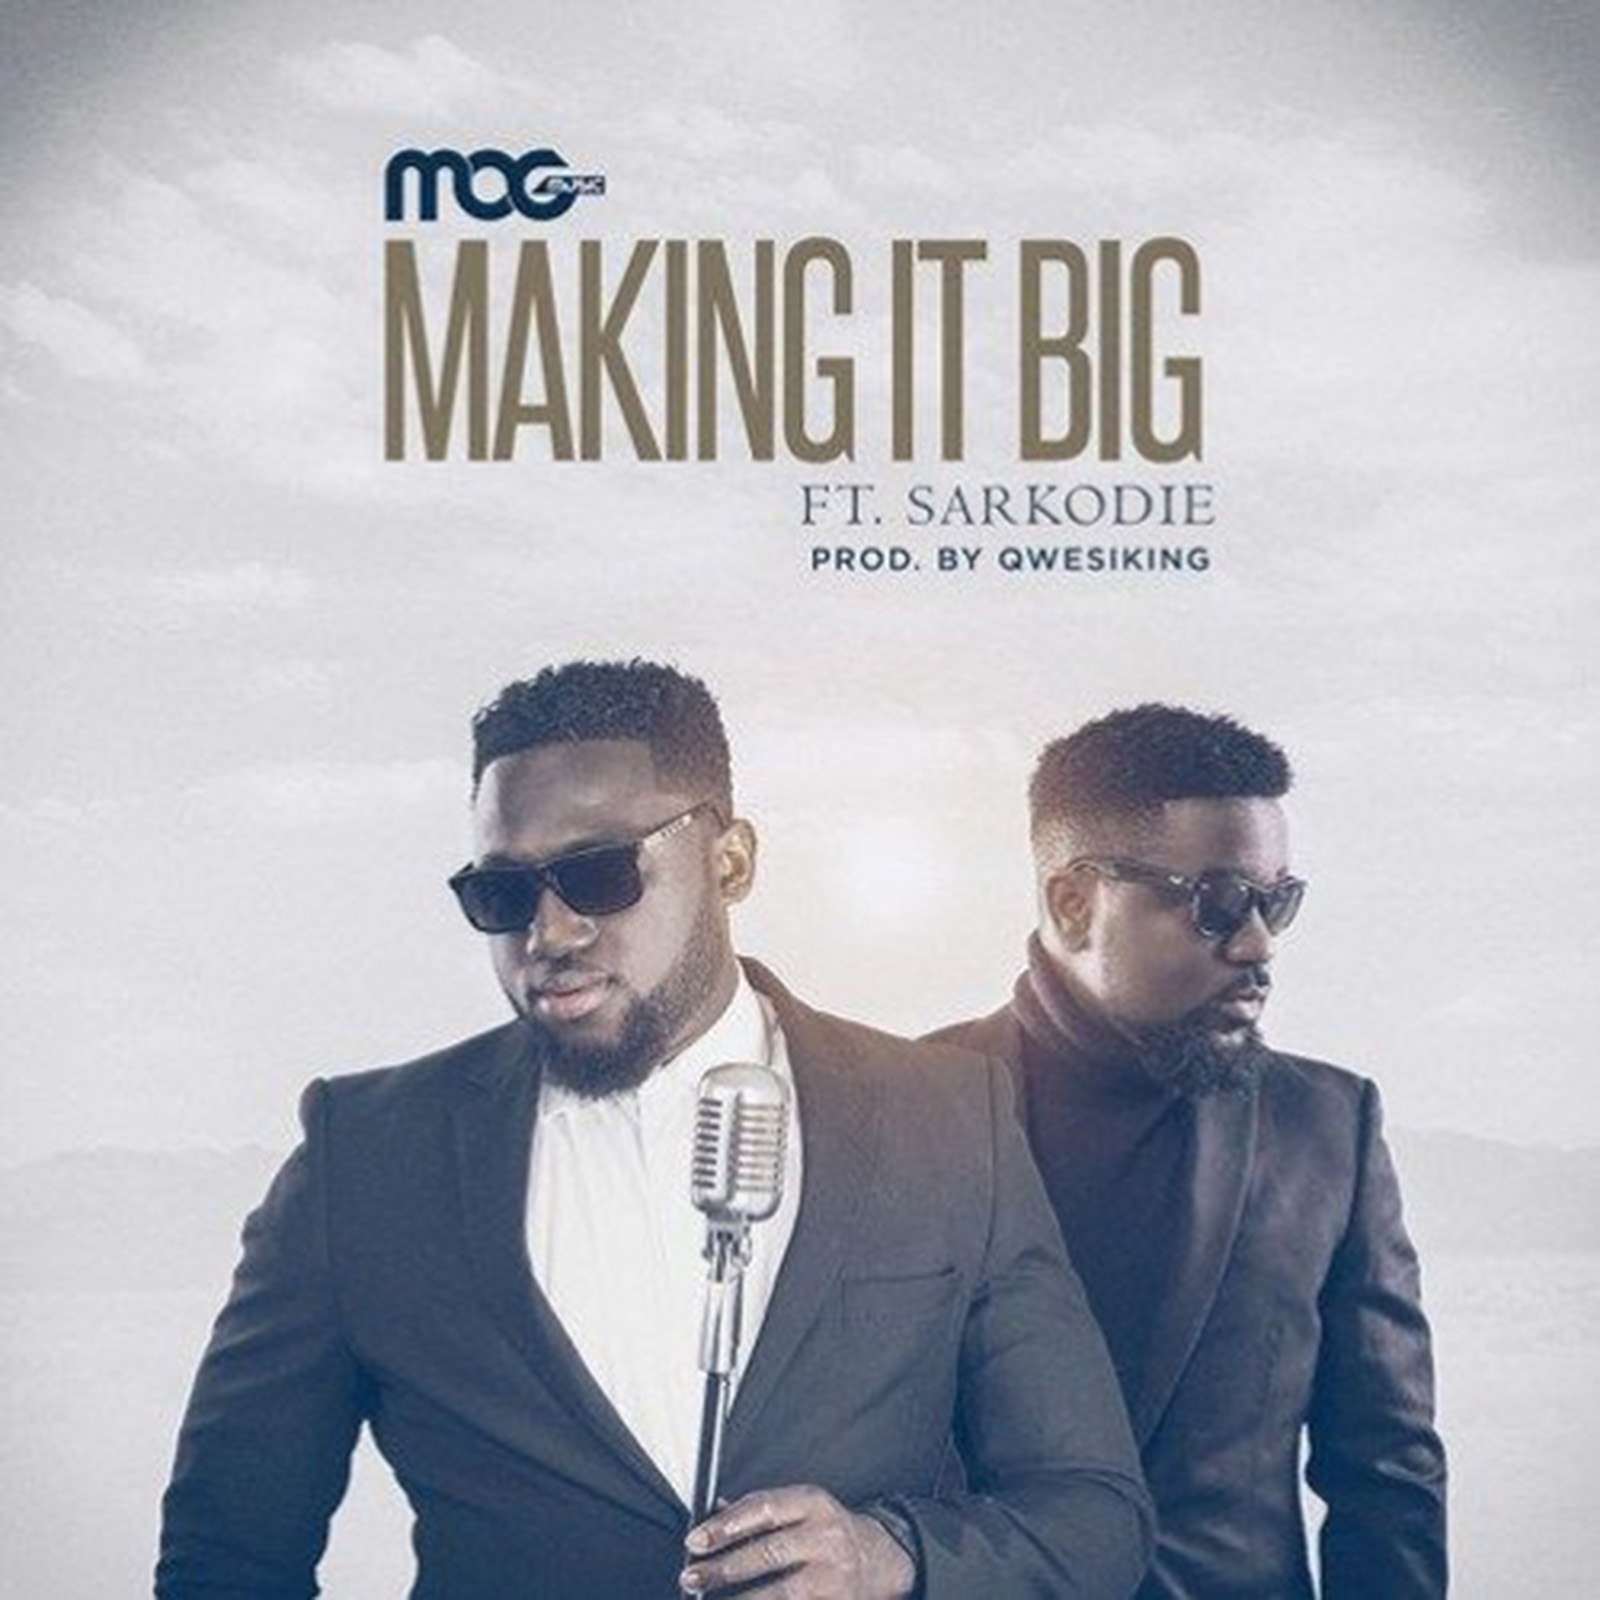 Making It Big by MOG Music feat. Sarkodie